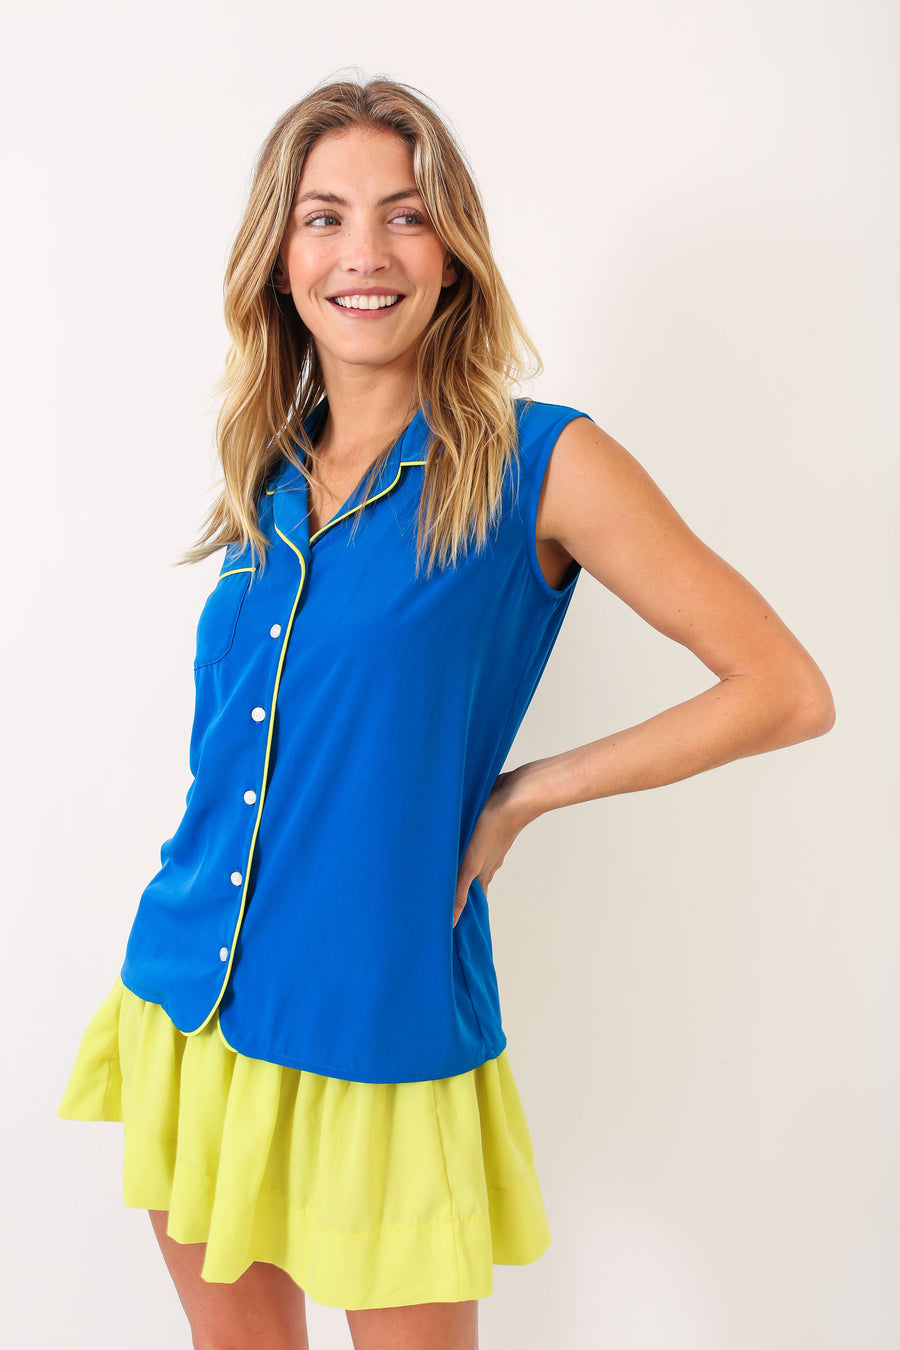 MADDIE TOP PACIFIC BLUE *LIMITED*EDITION*